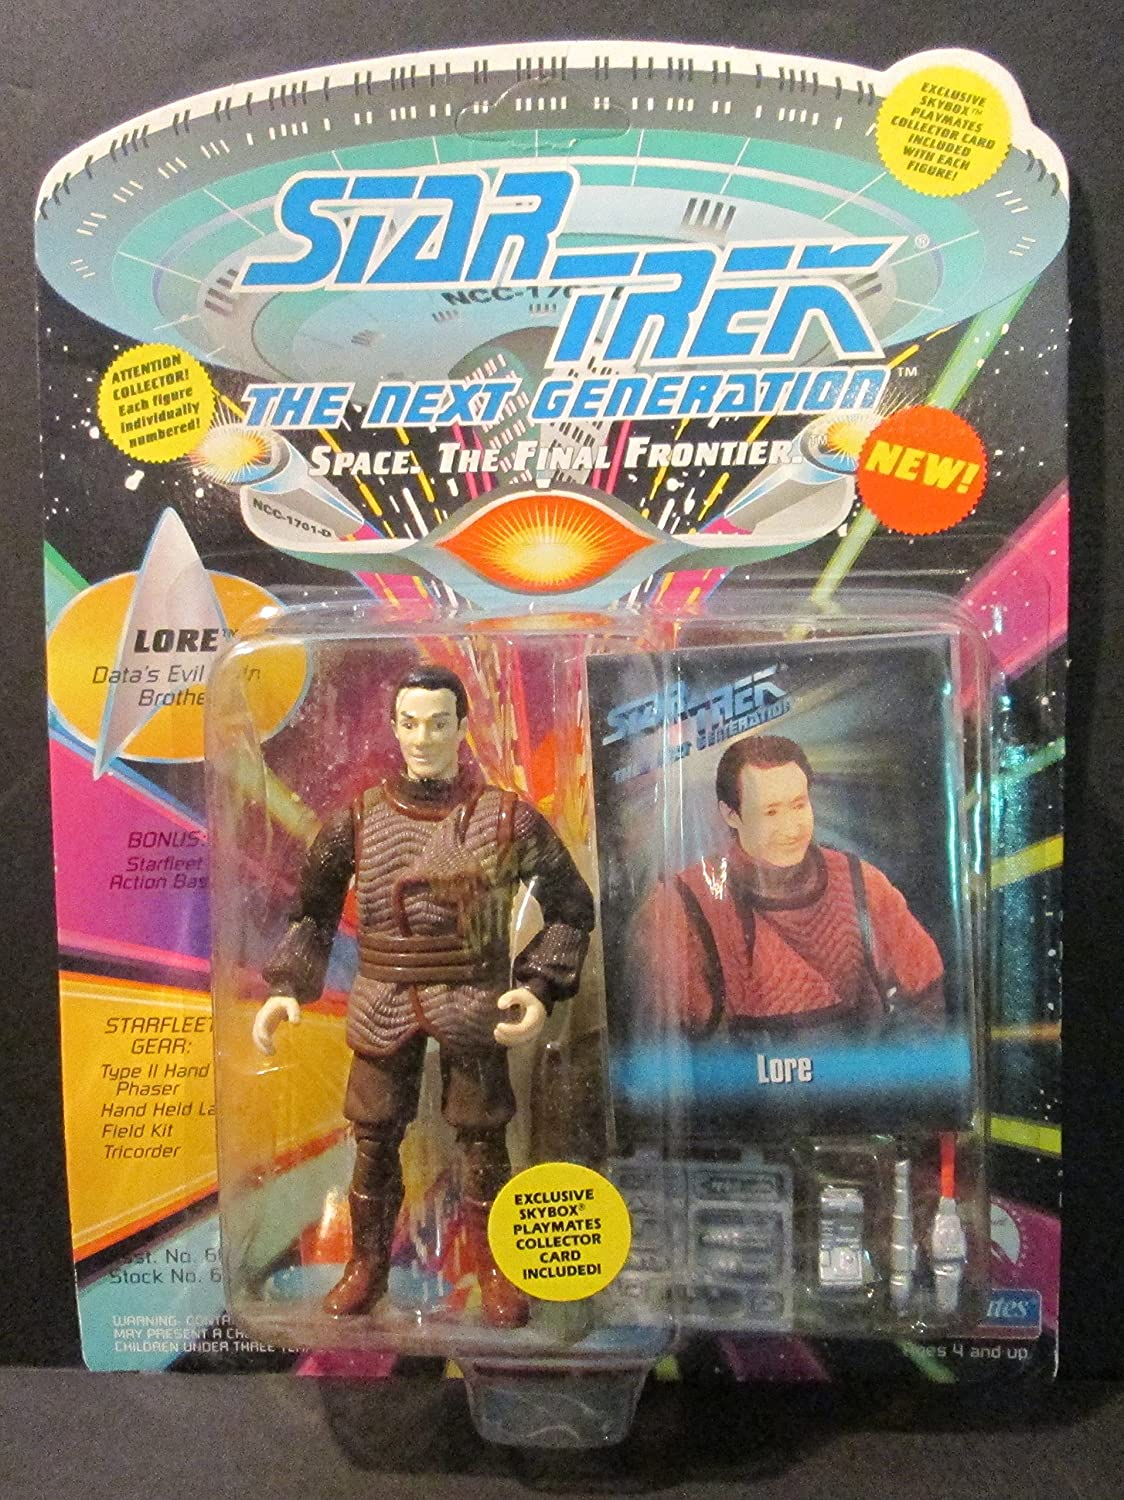 Star Trek The Next Generation Playmates Toys Action Figures choice /& Voyager